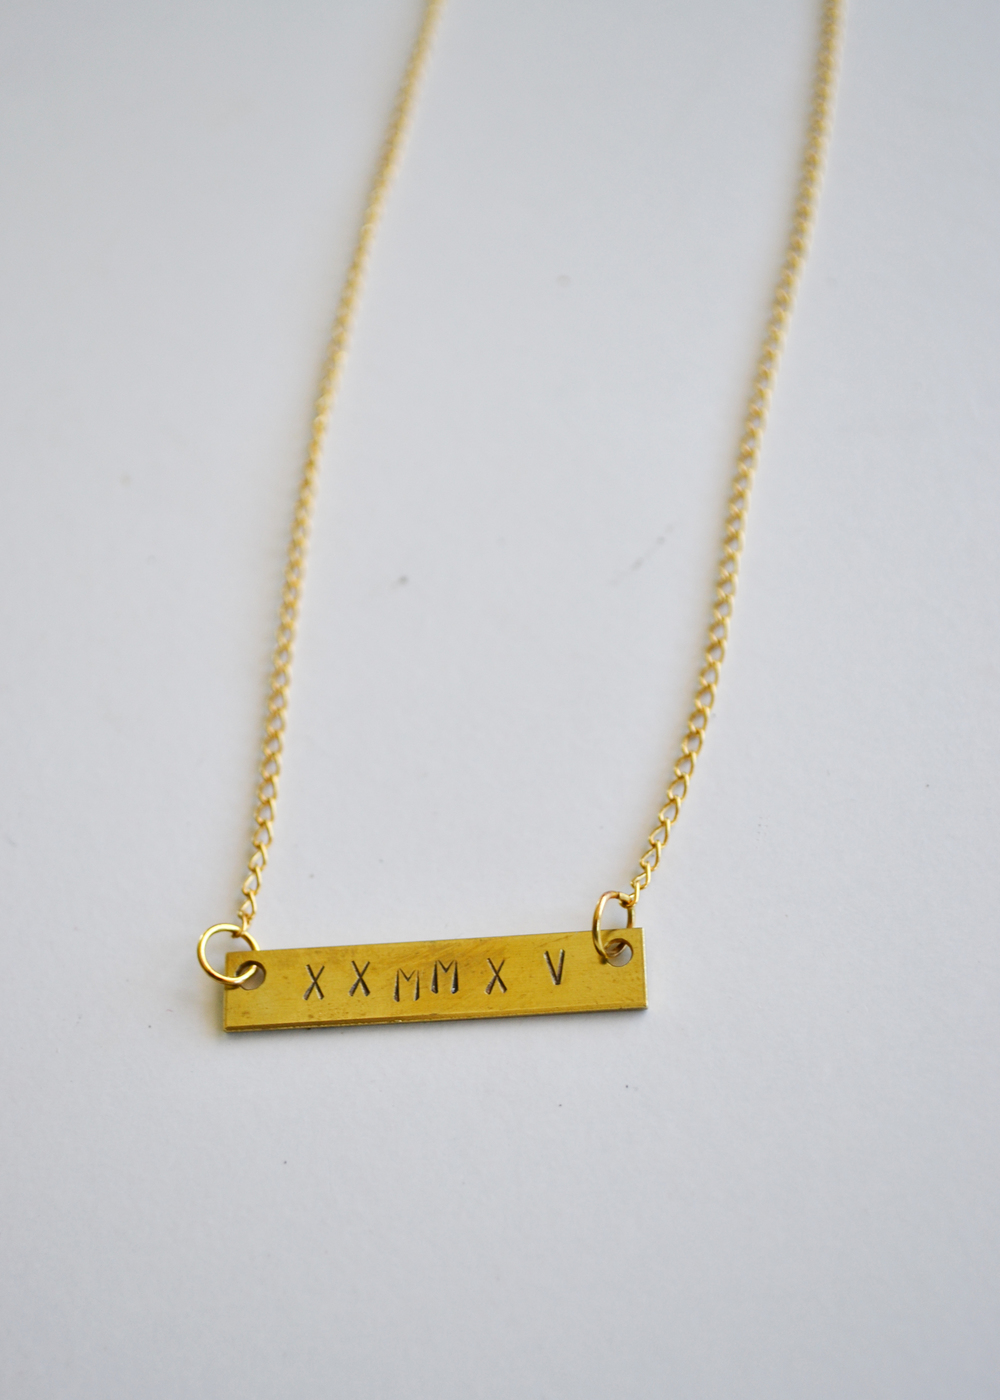 Adorable DIY necklace with special dates stamped in. Would be perfect for a shower or wedding gift. From boxwoodavenue.com